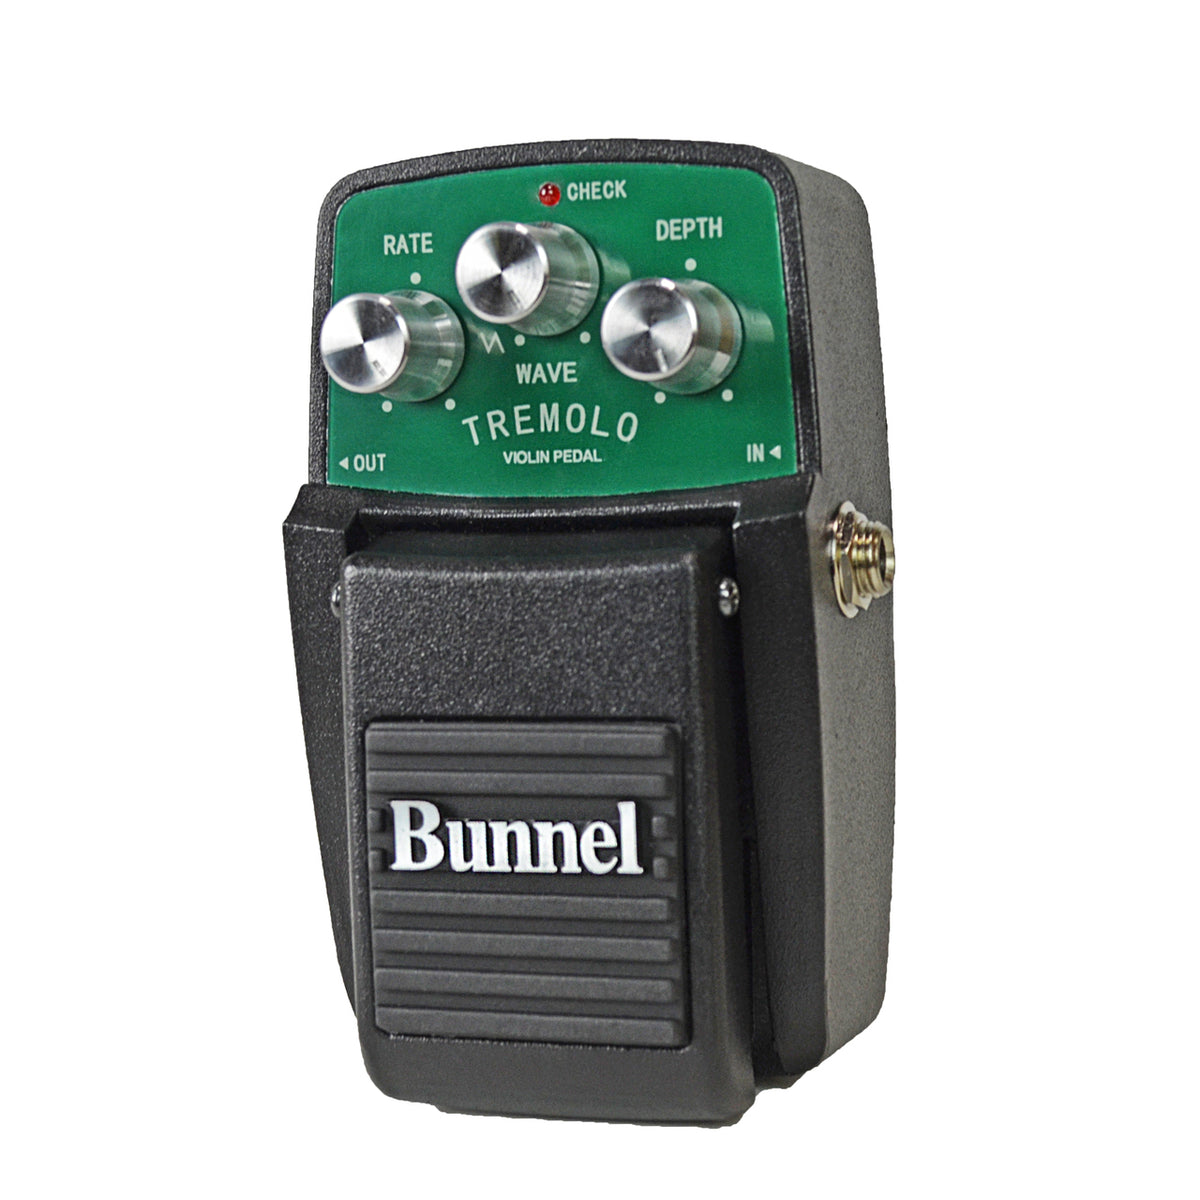 Bunnel Tremolo Violin Effects Pedal for Sale Online